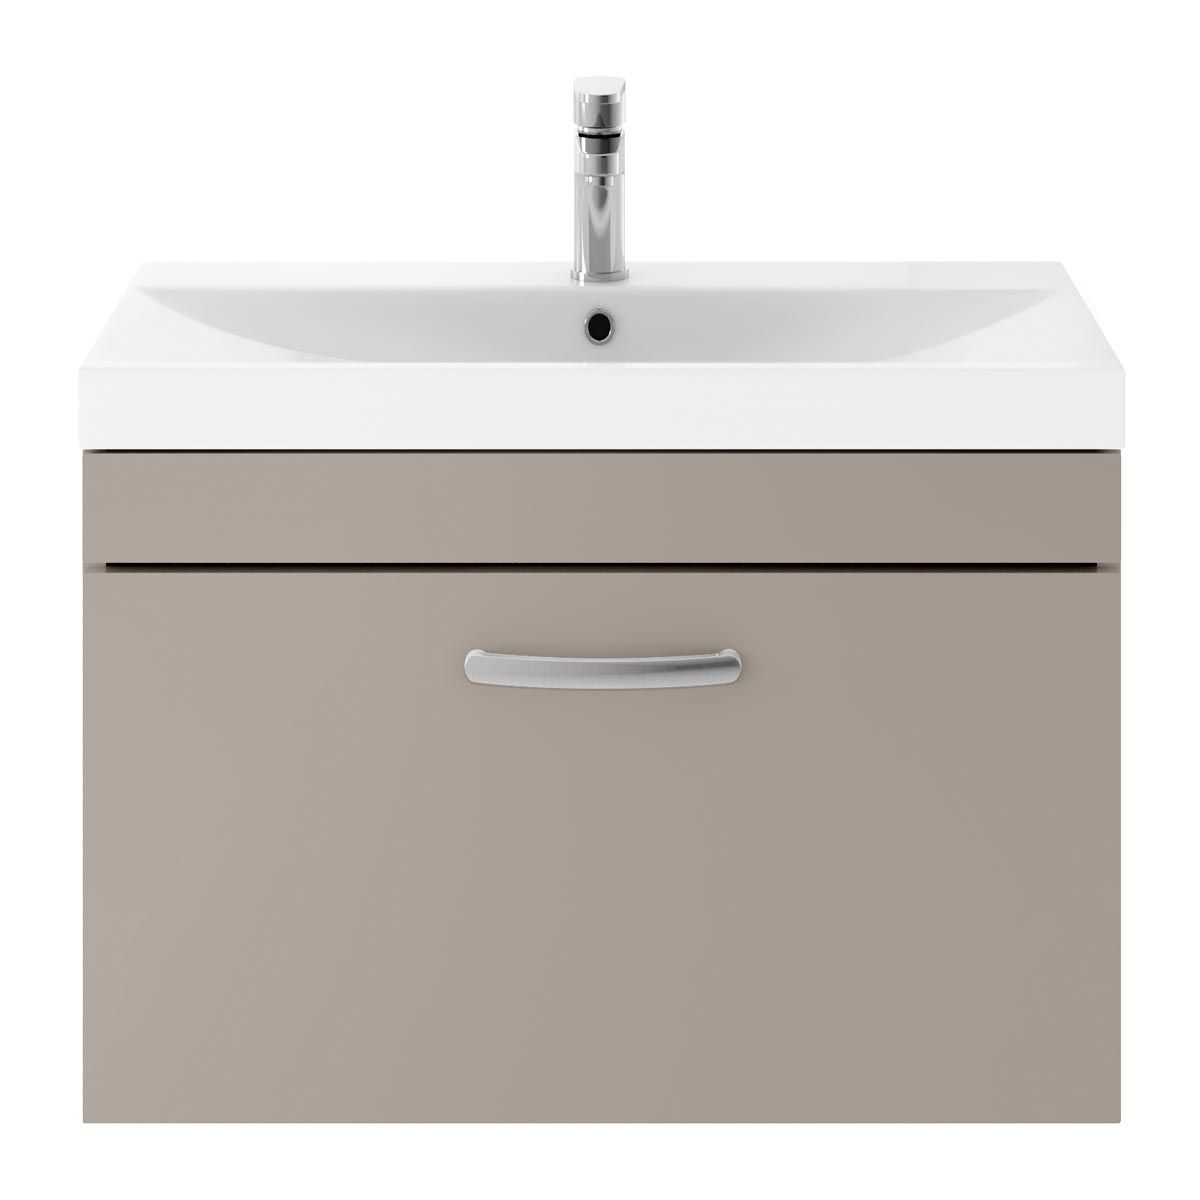 Nuie Athena Stone Grey 1 Drawer Wall Hung Vanity Unit with 50mm Profile Basin 800mm